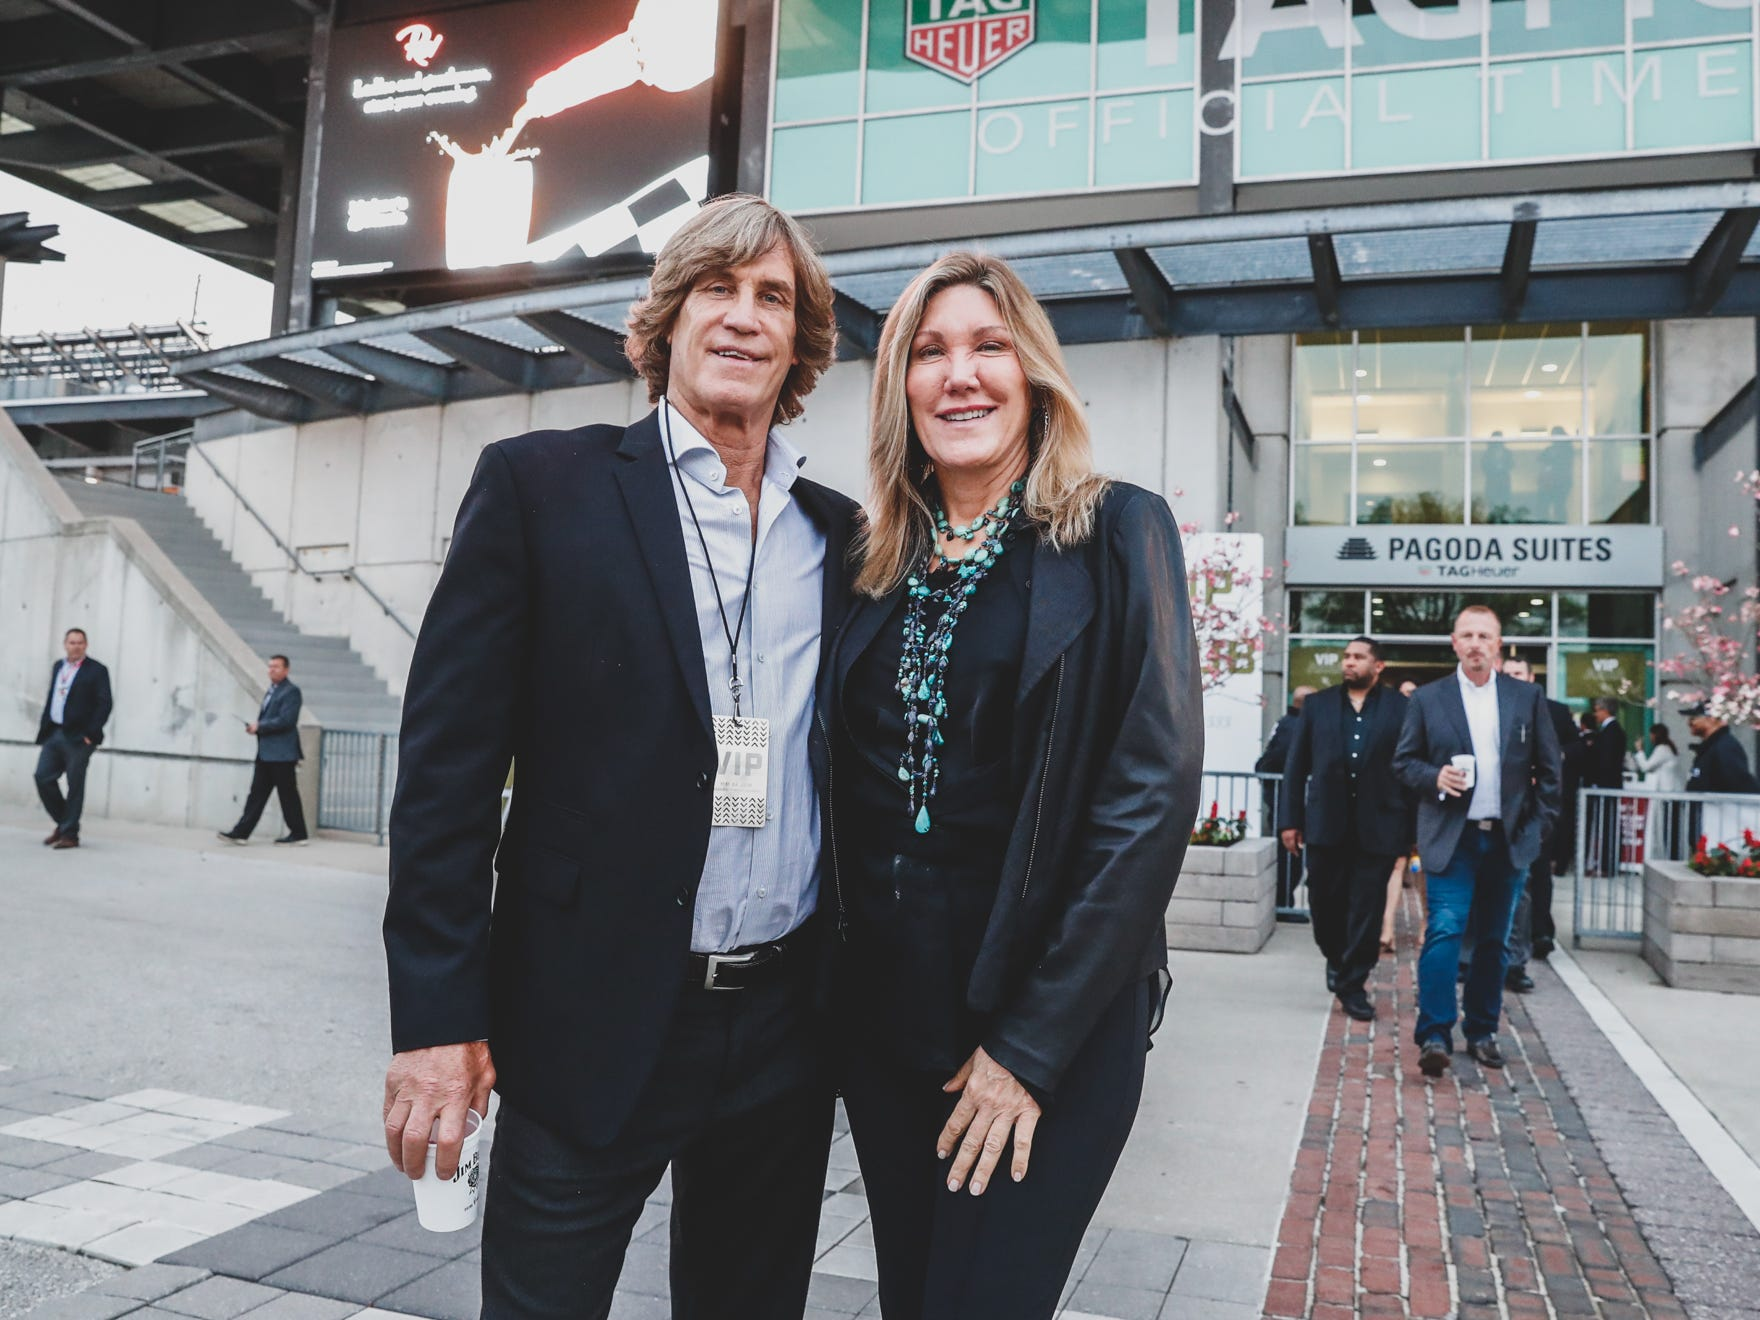 Nancy George and Steve Cardoza attend the Rev Indy fundraiser, held at the Indianapolis Motor Speedway on Saturday, May 4, 2019. Funds raised support the IU Health Foundation statewide and the IU Health Emergency Medical Center at IMS.